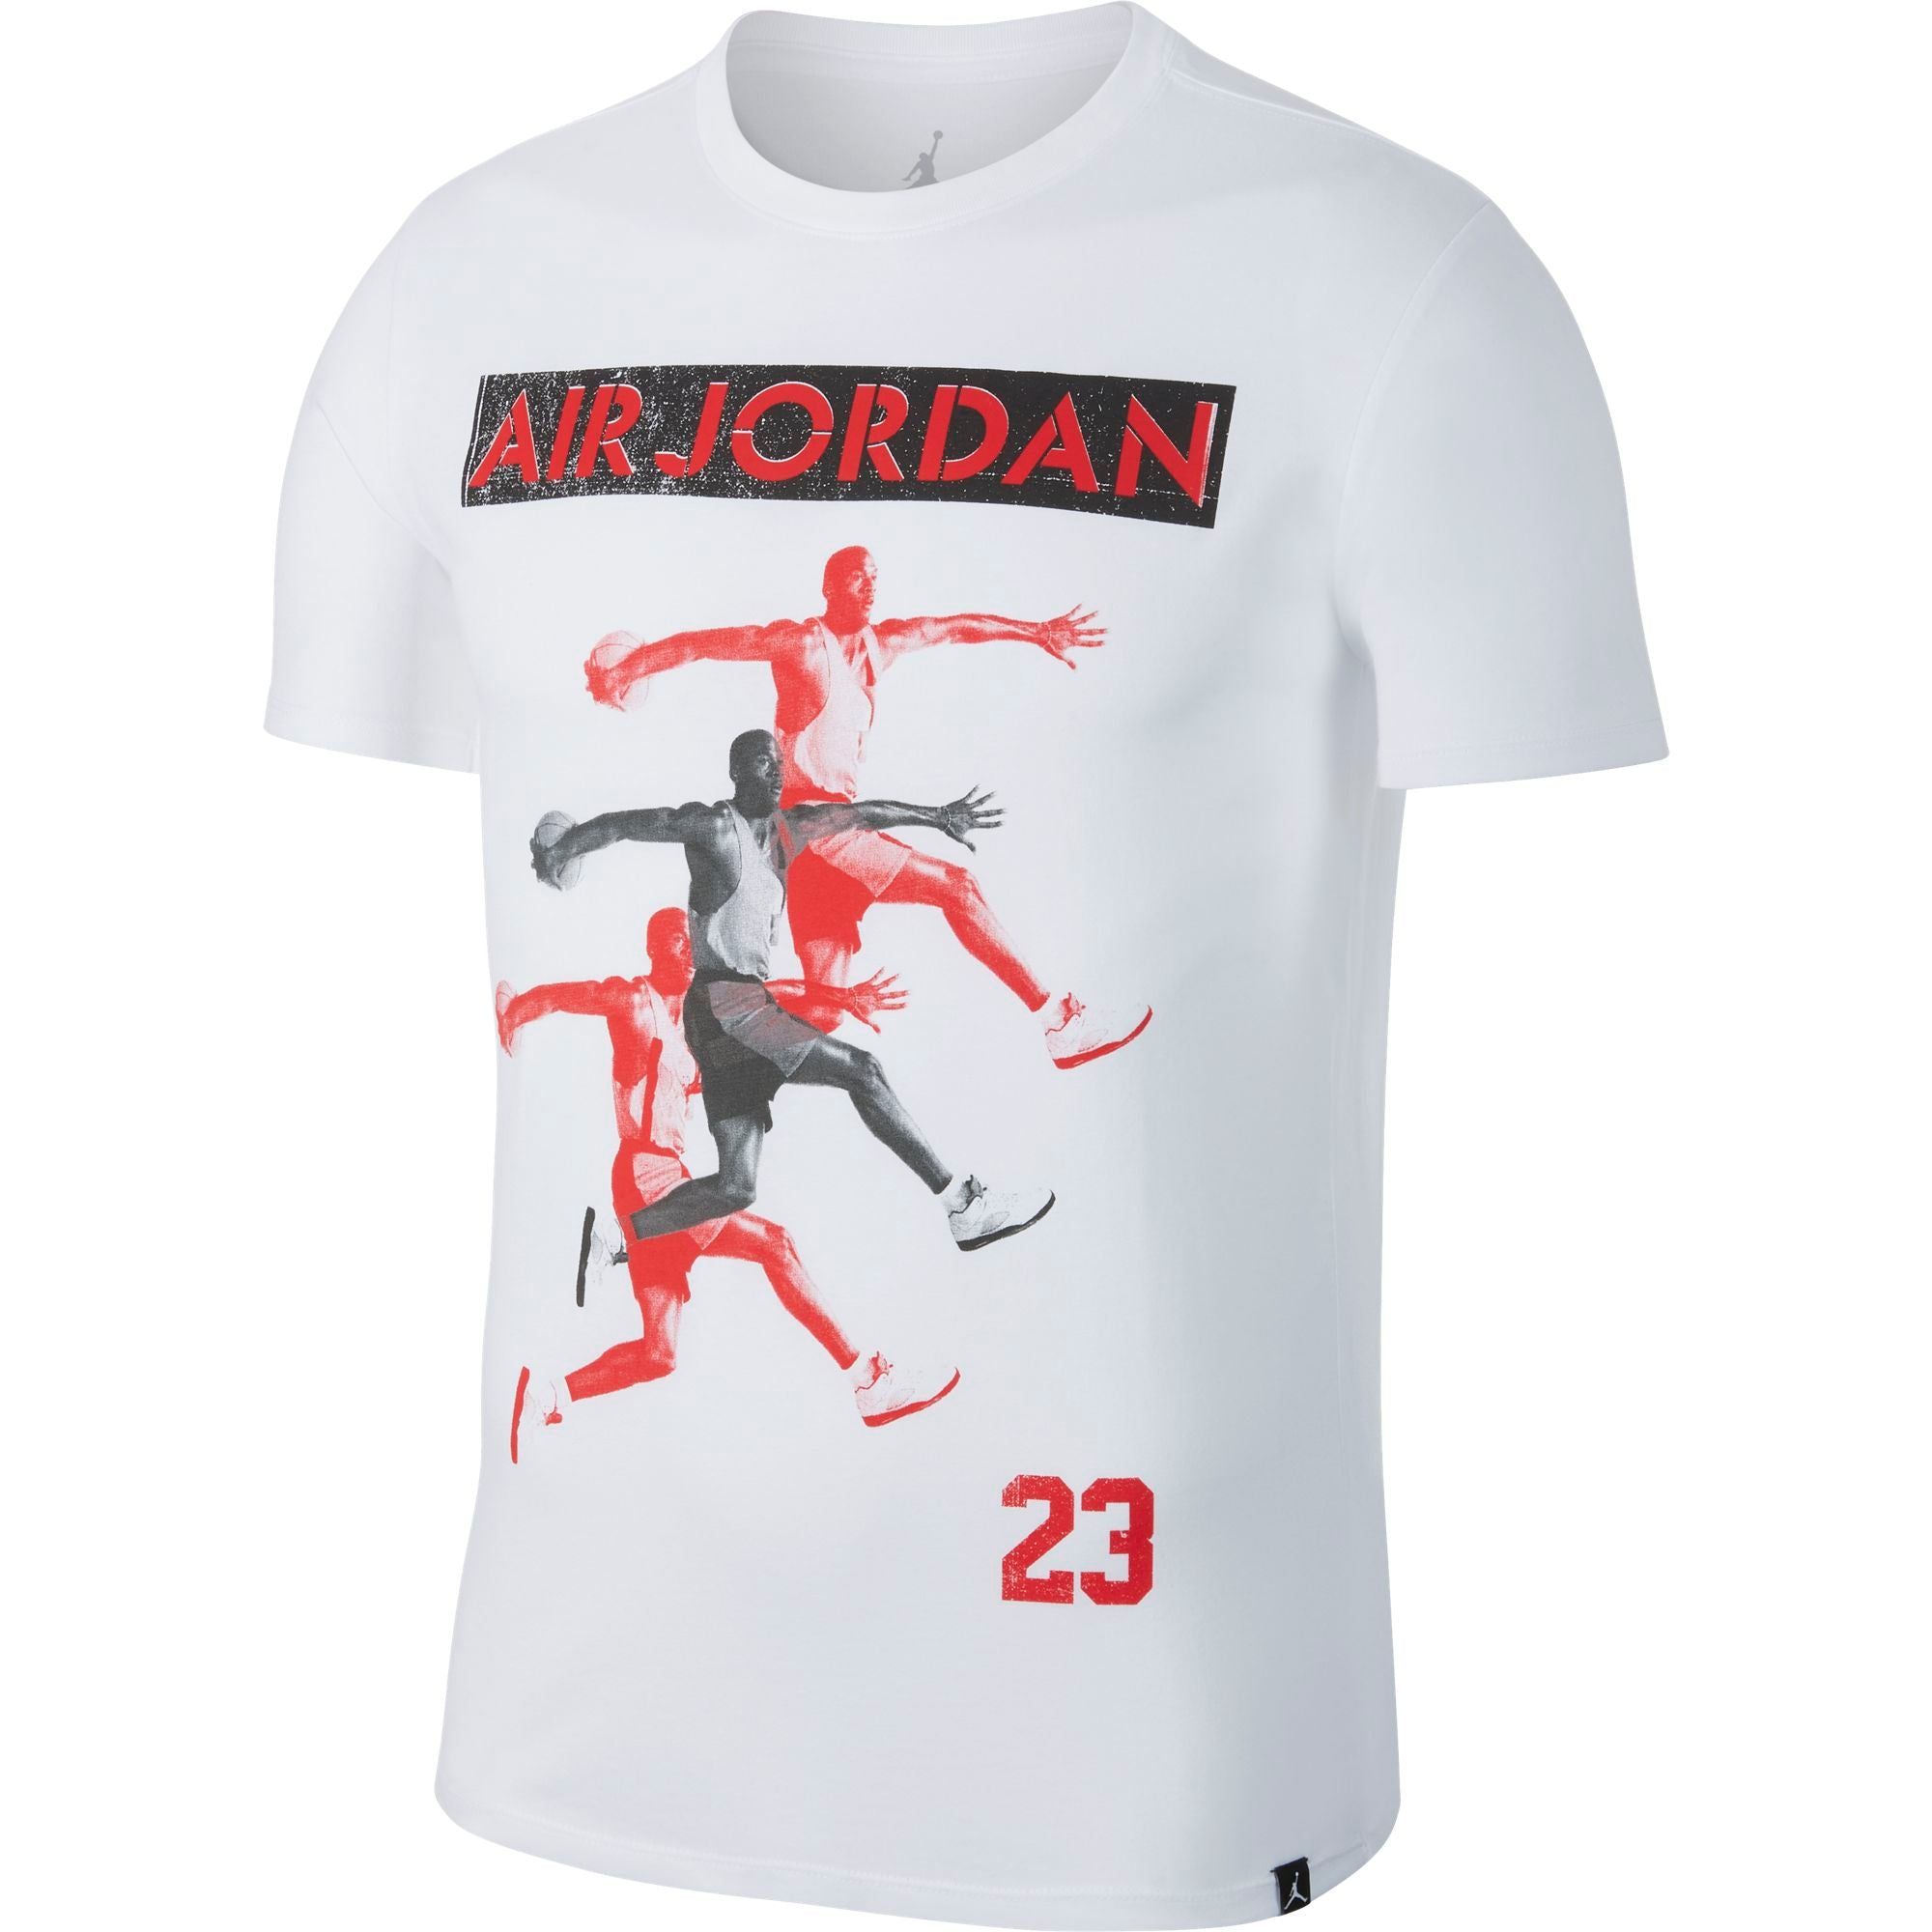 Nike Jordan Basketball Photo Tee - NK-916134-100